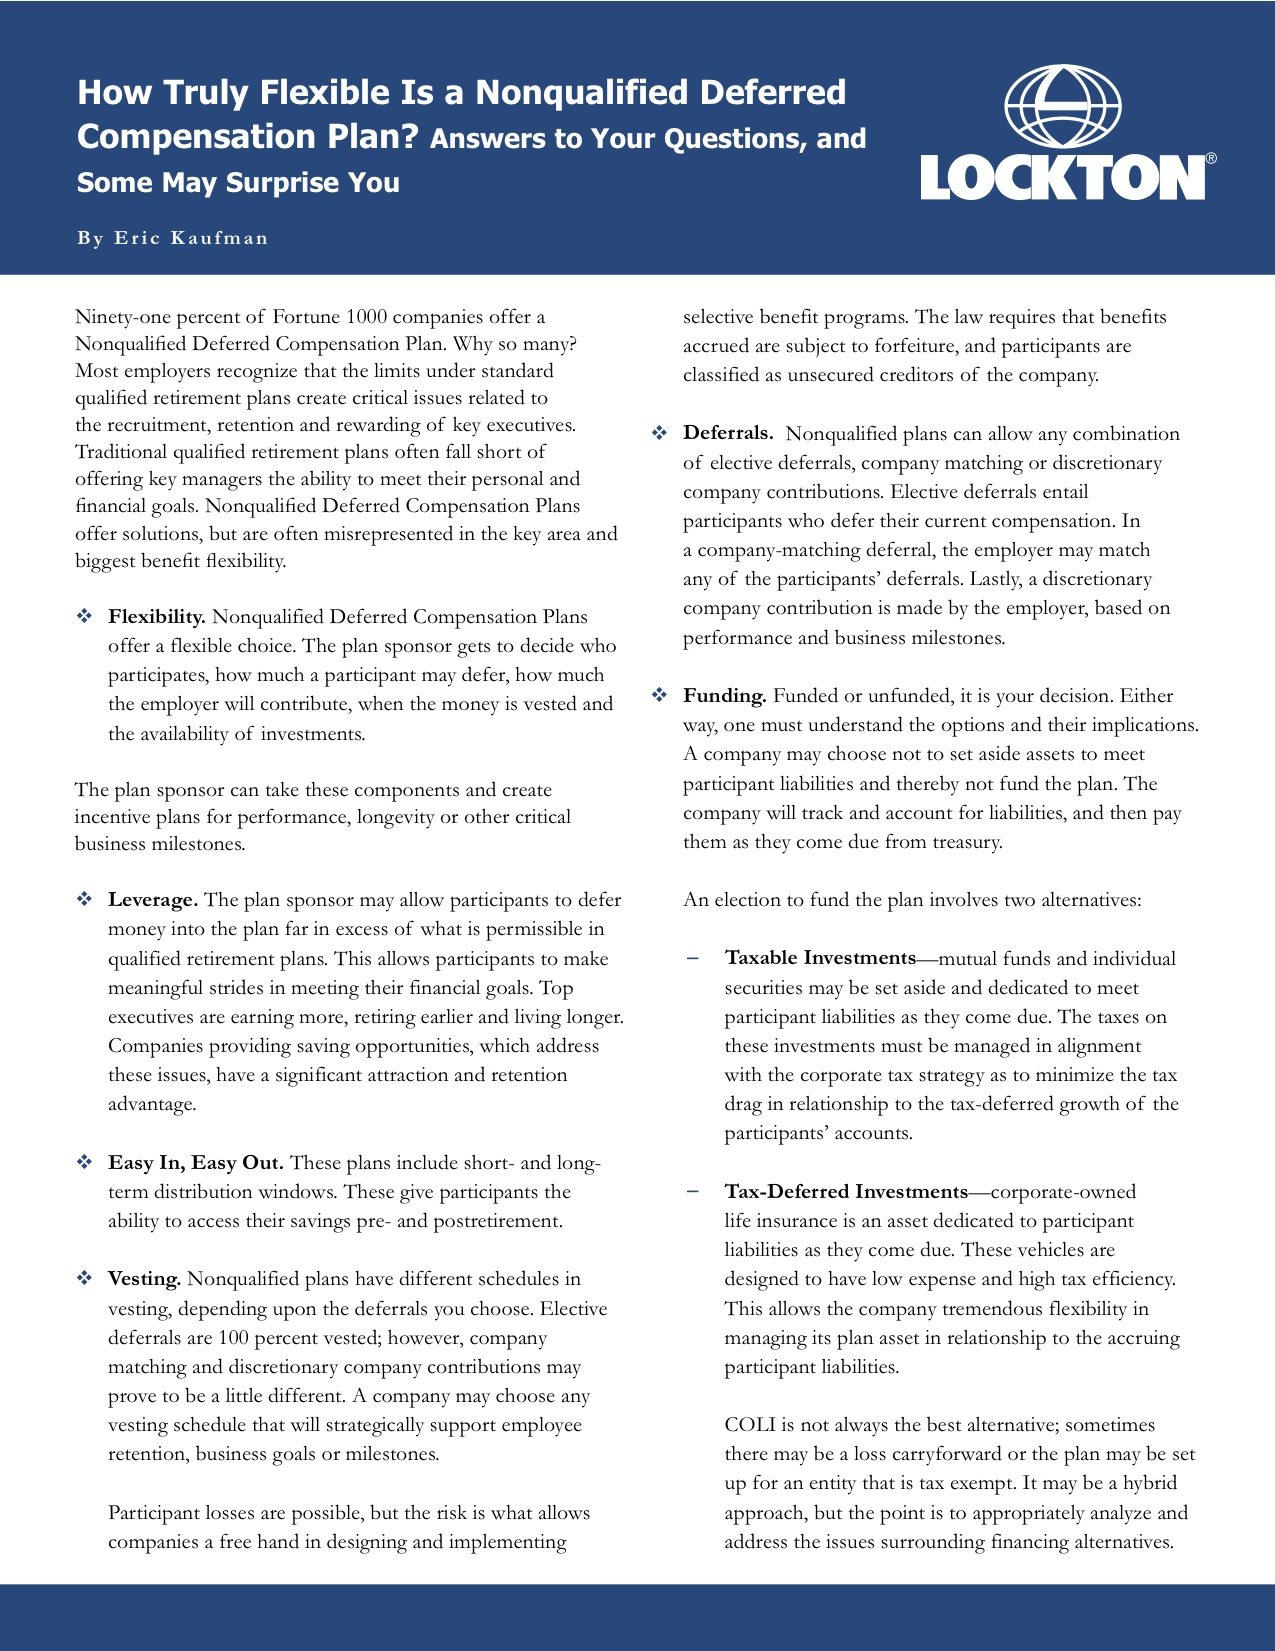 Deferred compensation investment options